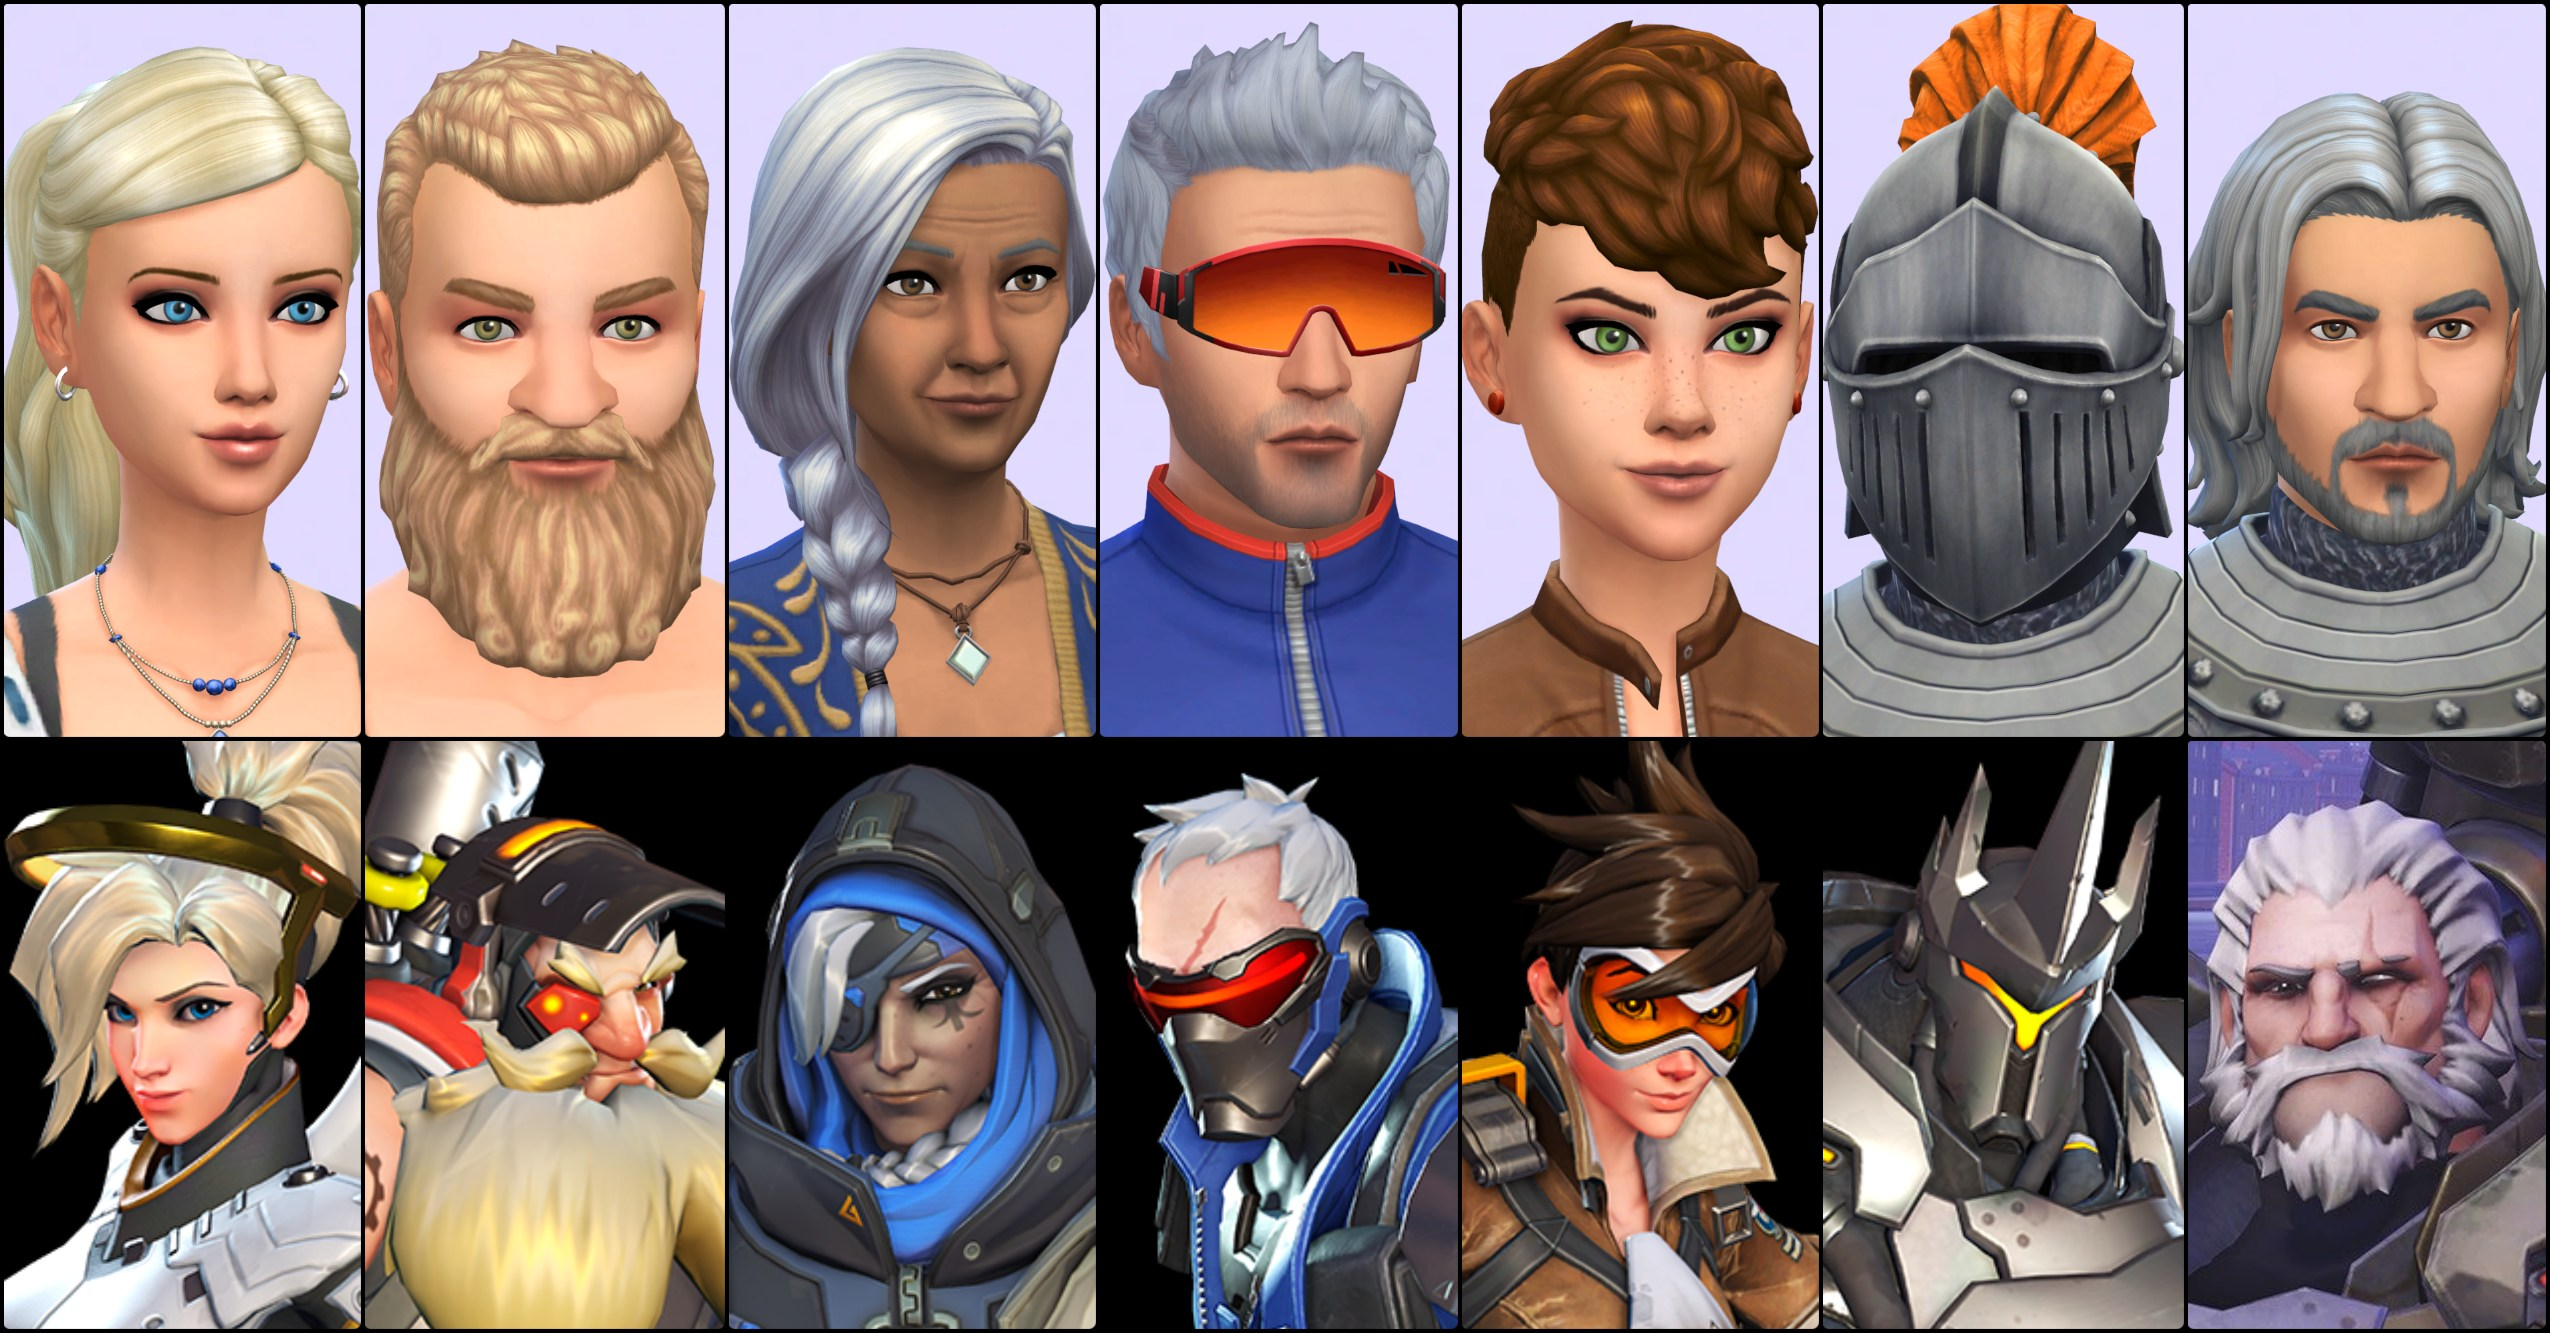 Sims 4 Overwatch Characters